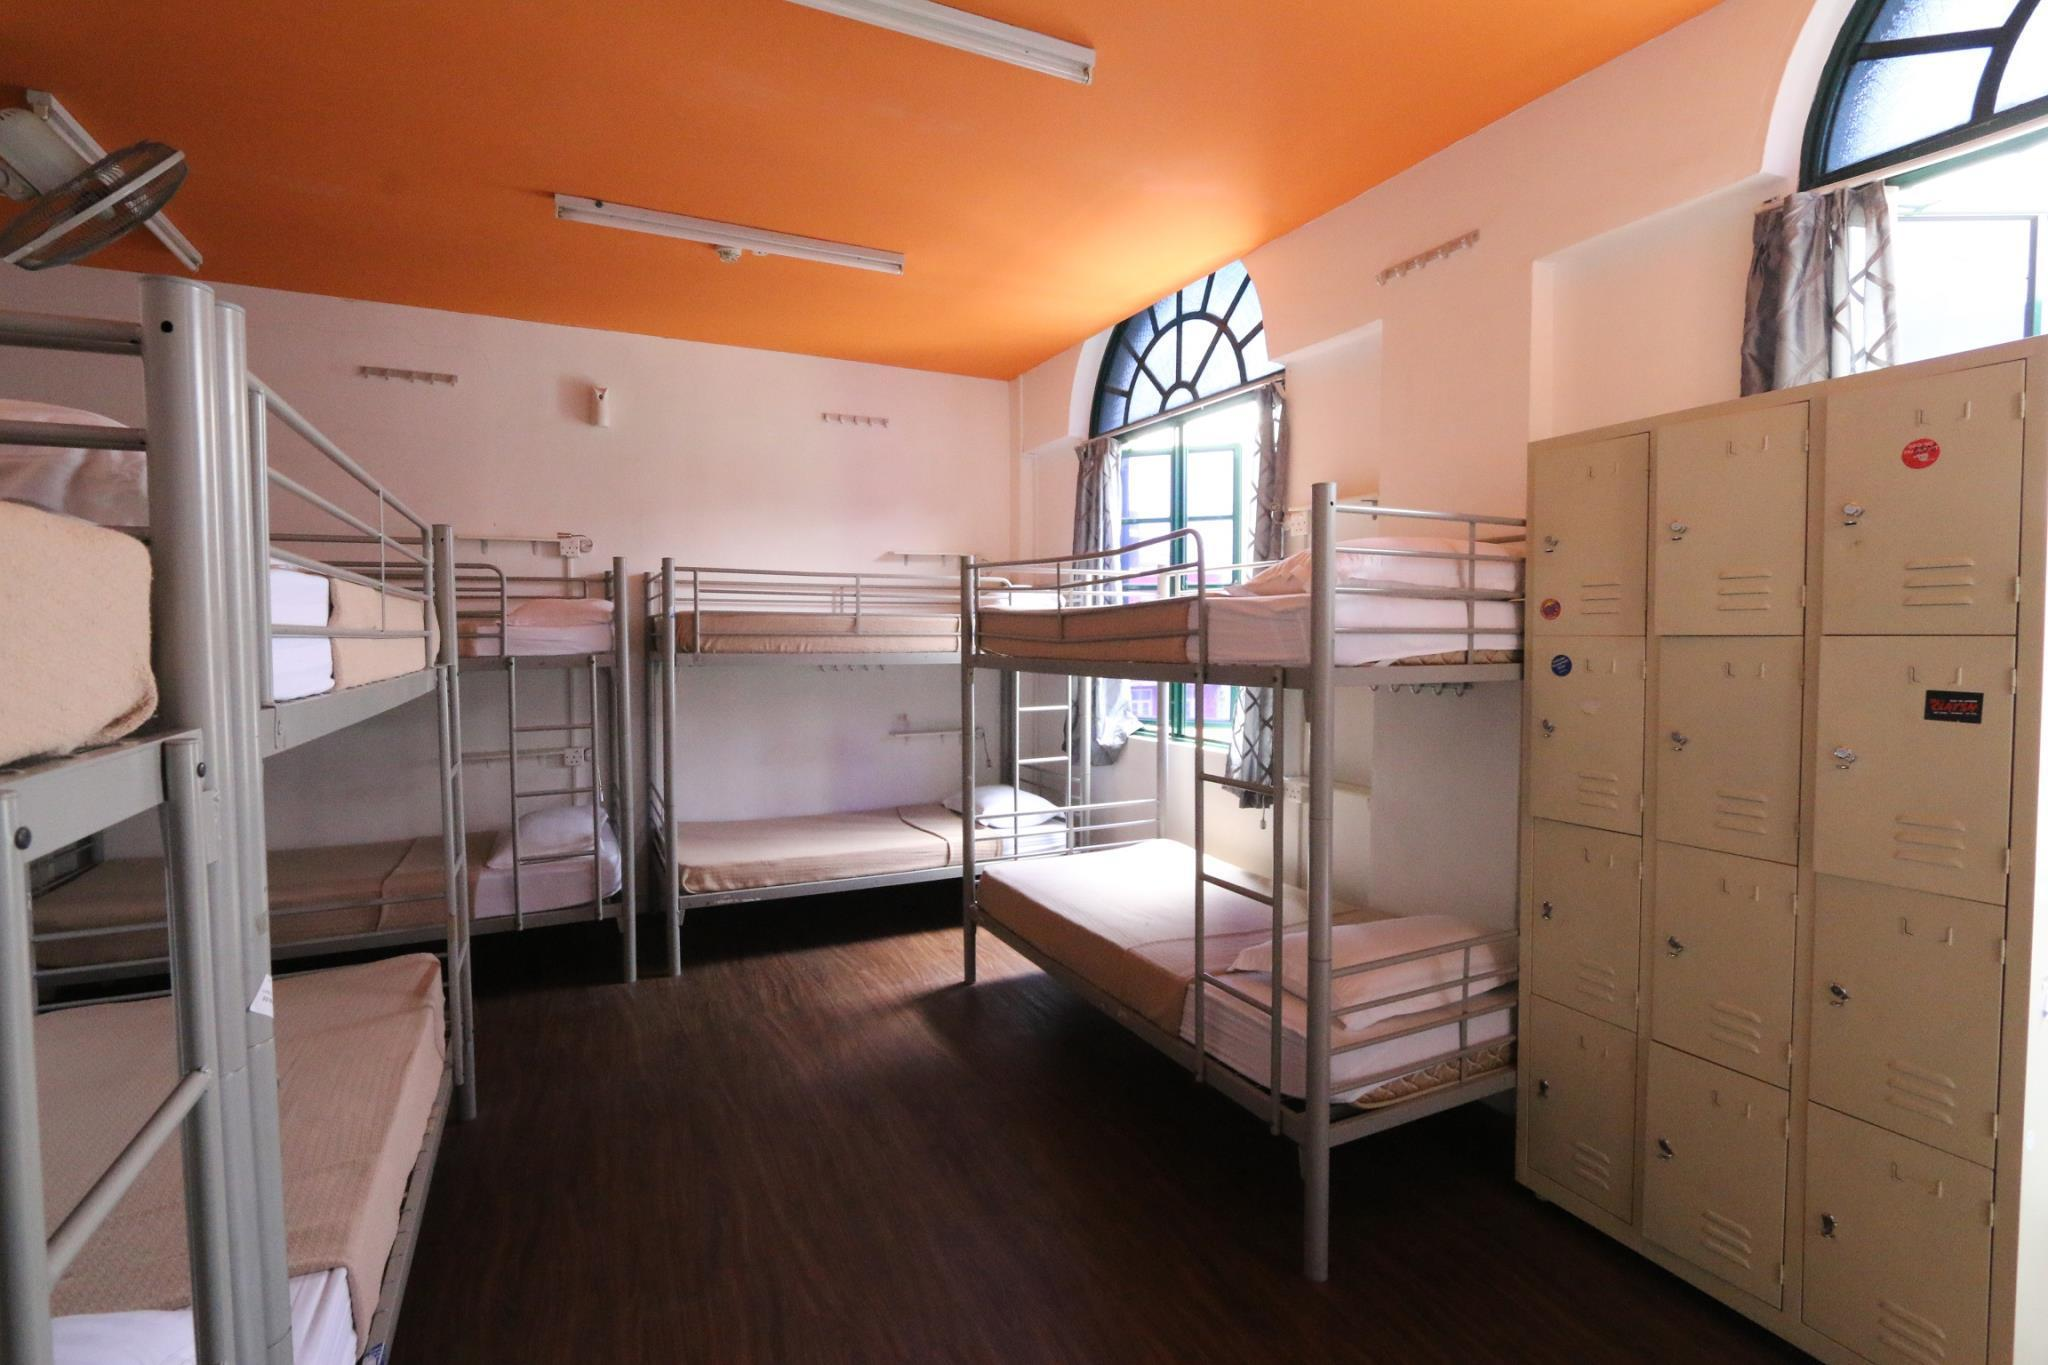 2 người trong phòng tập thể 12 giường – Nam & Nữ (2 People in 12-Bed Dormitory - Mixed)